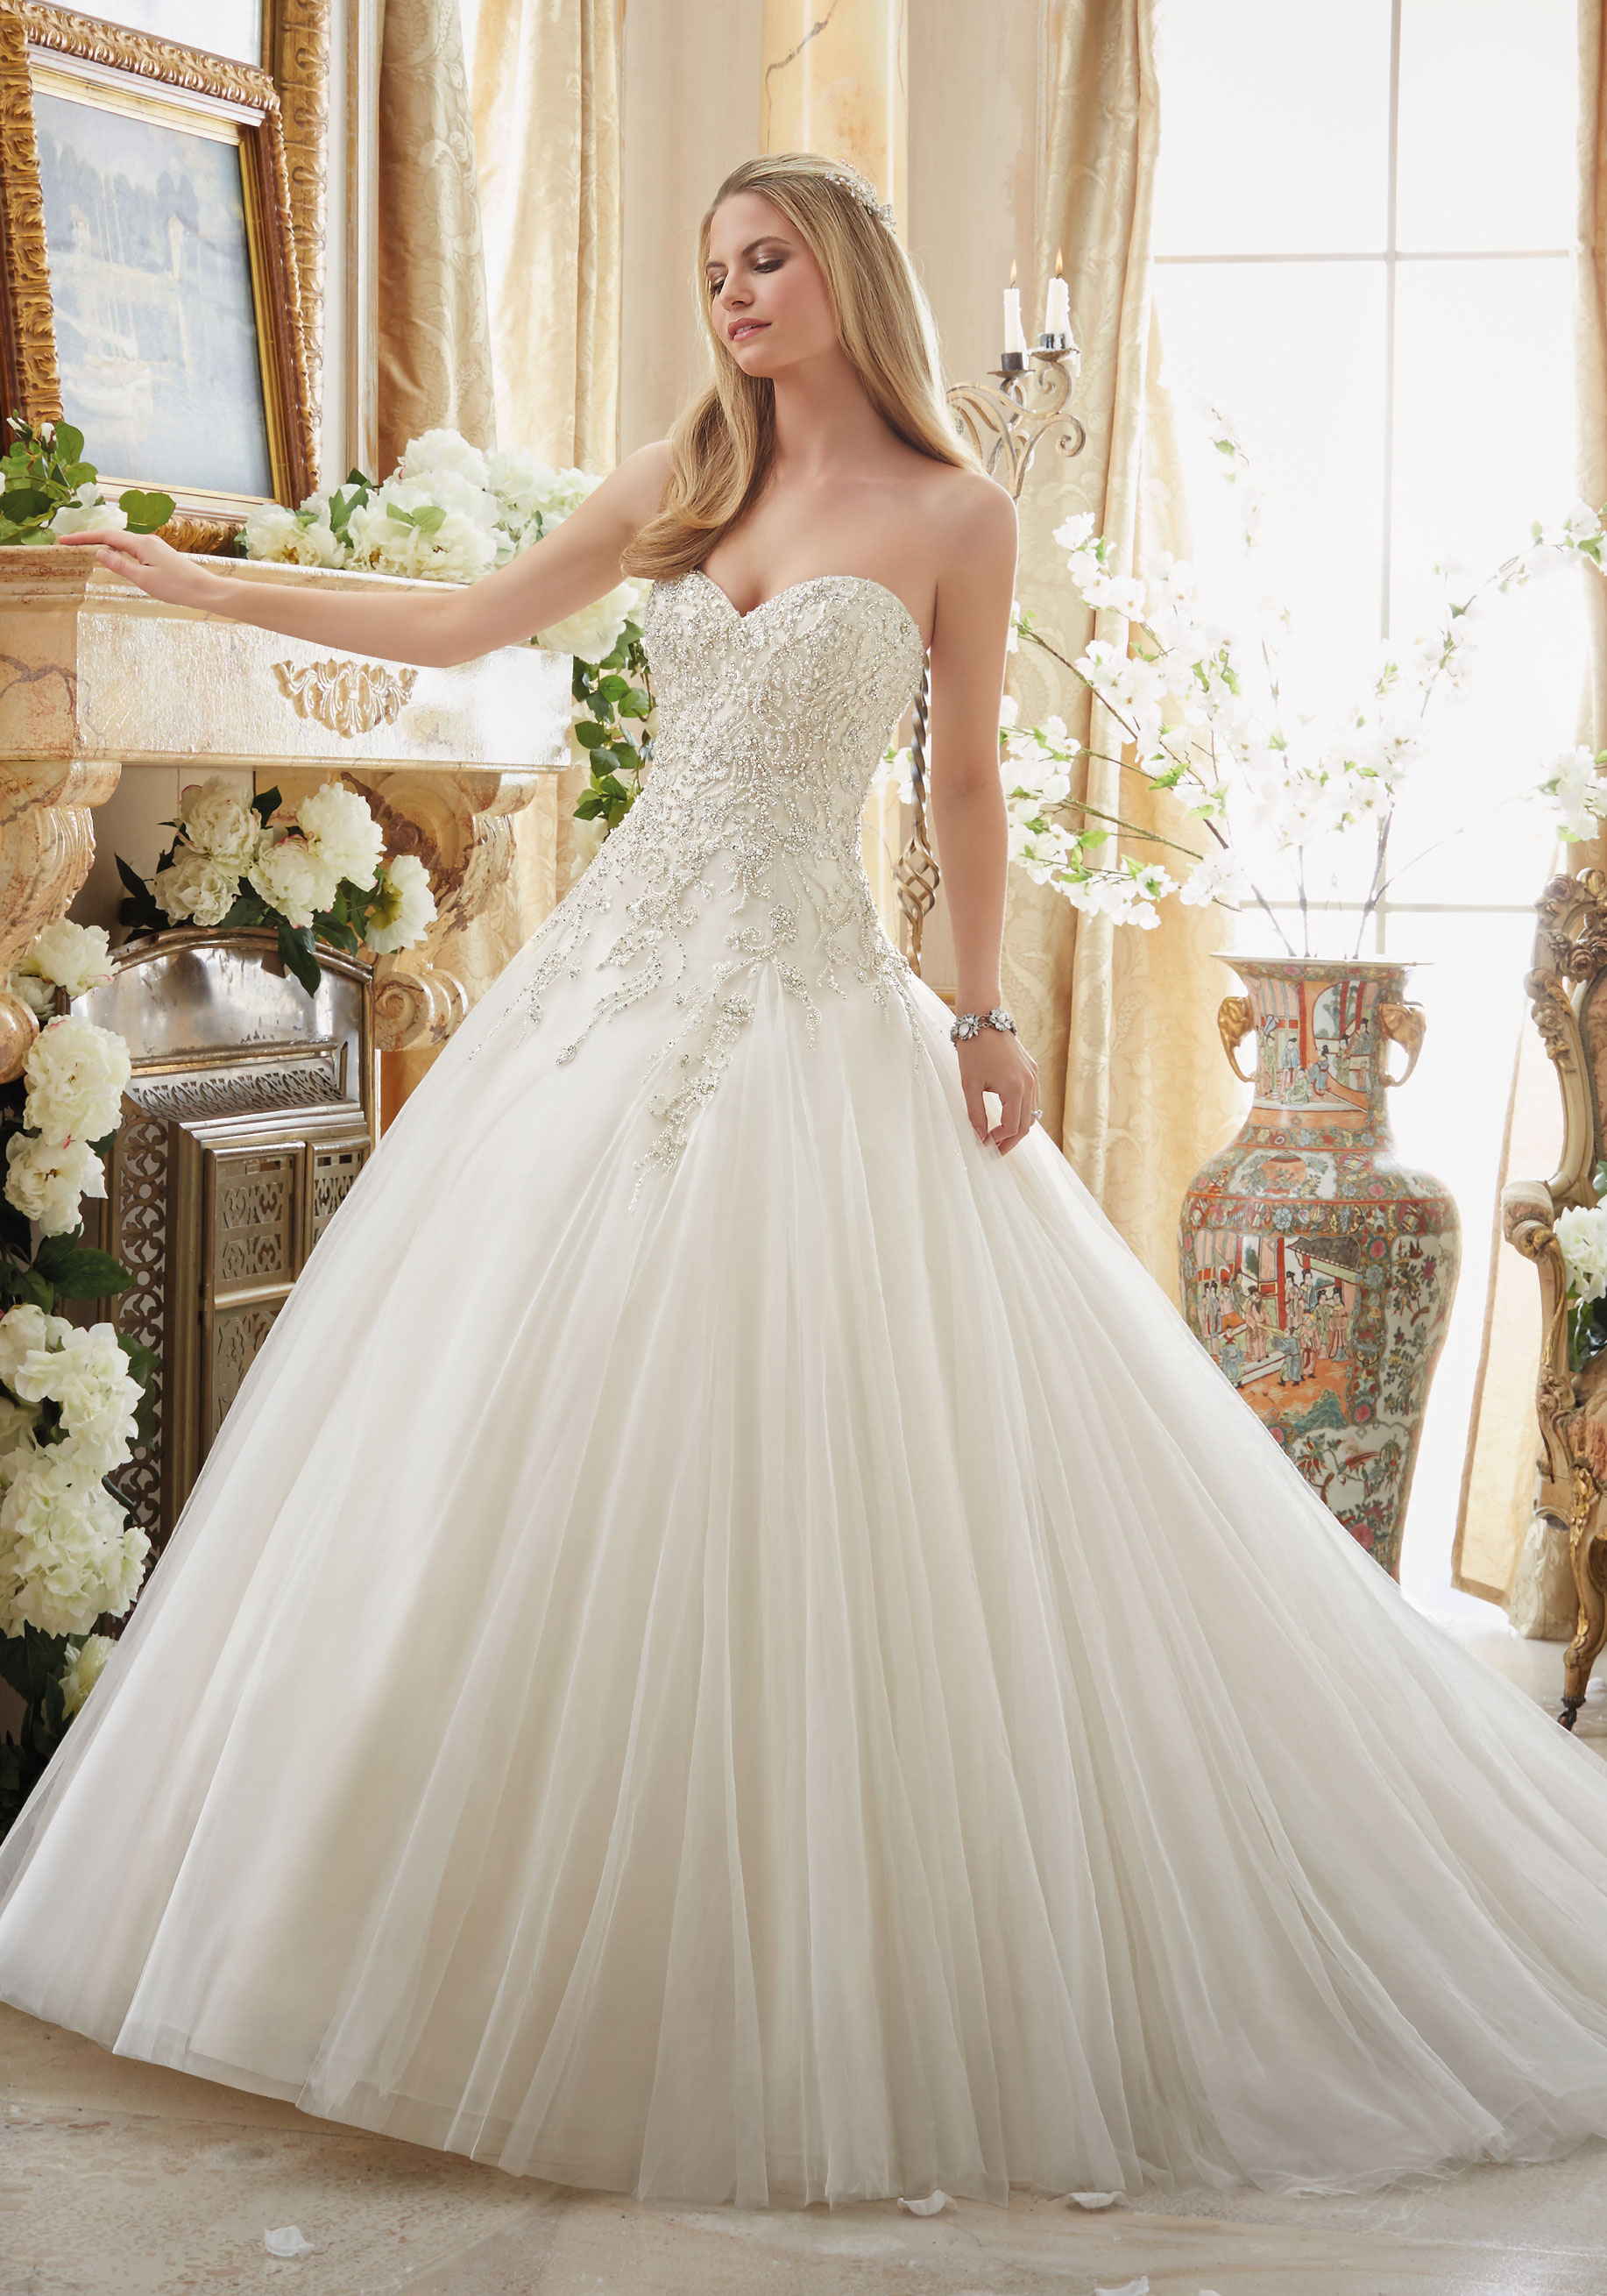 wedding dresses davids bridal photo - 1